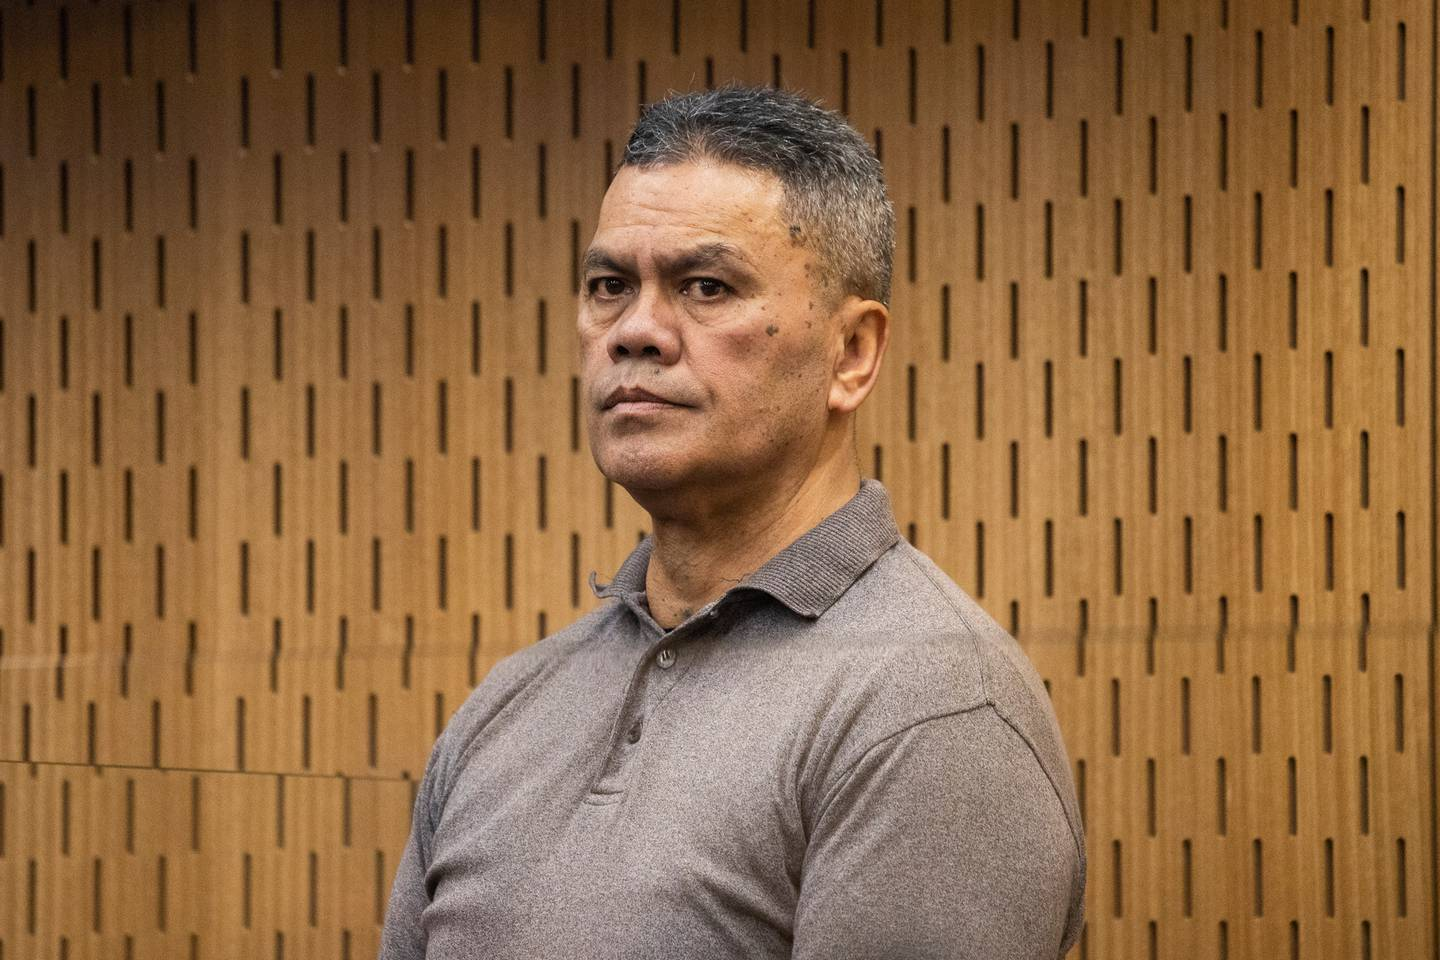 Juan Marsh in the dock in the High Court at Christchurch. Photo / George Heard